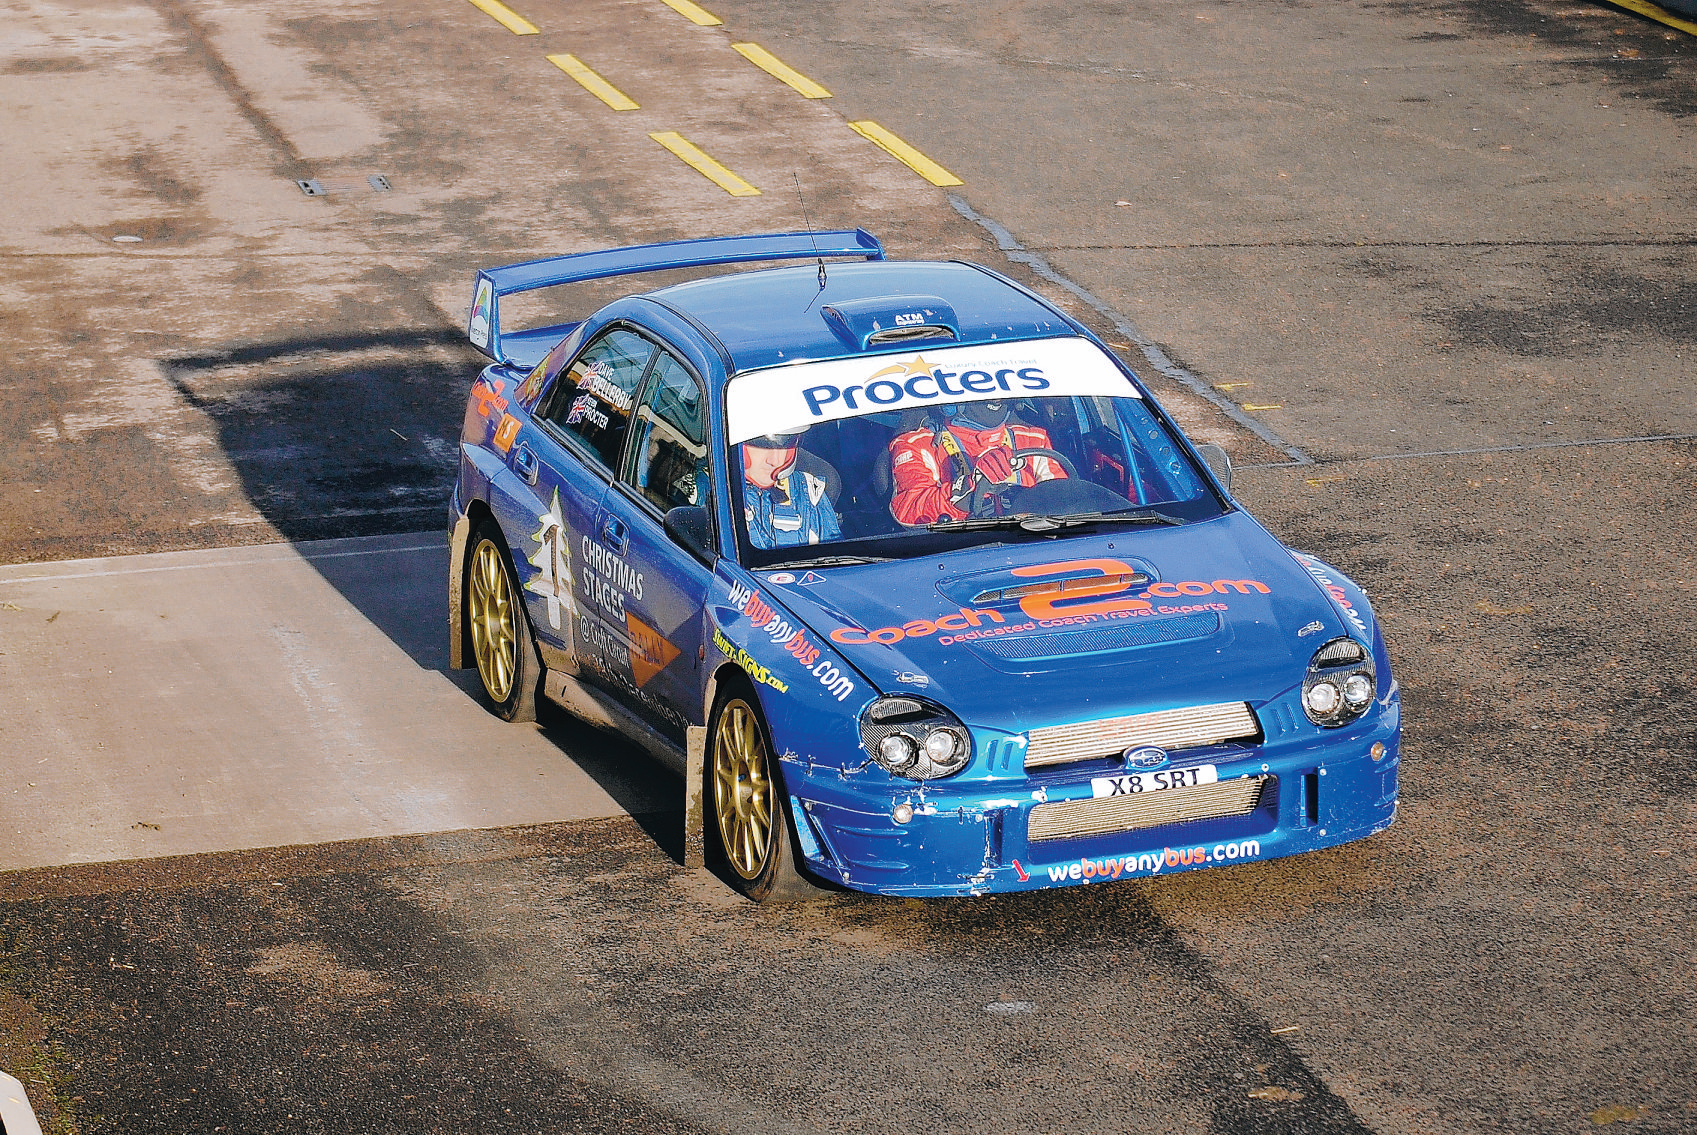 ON HIS WAY: Kevin Procter drives over the line to take victory in the Christmas Stages rally